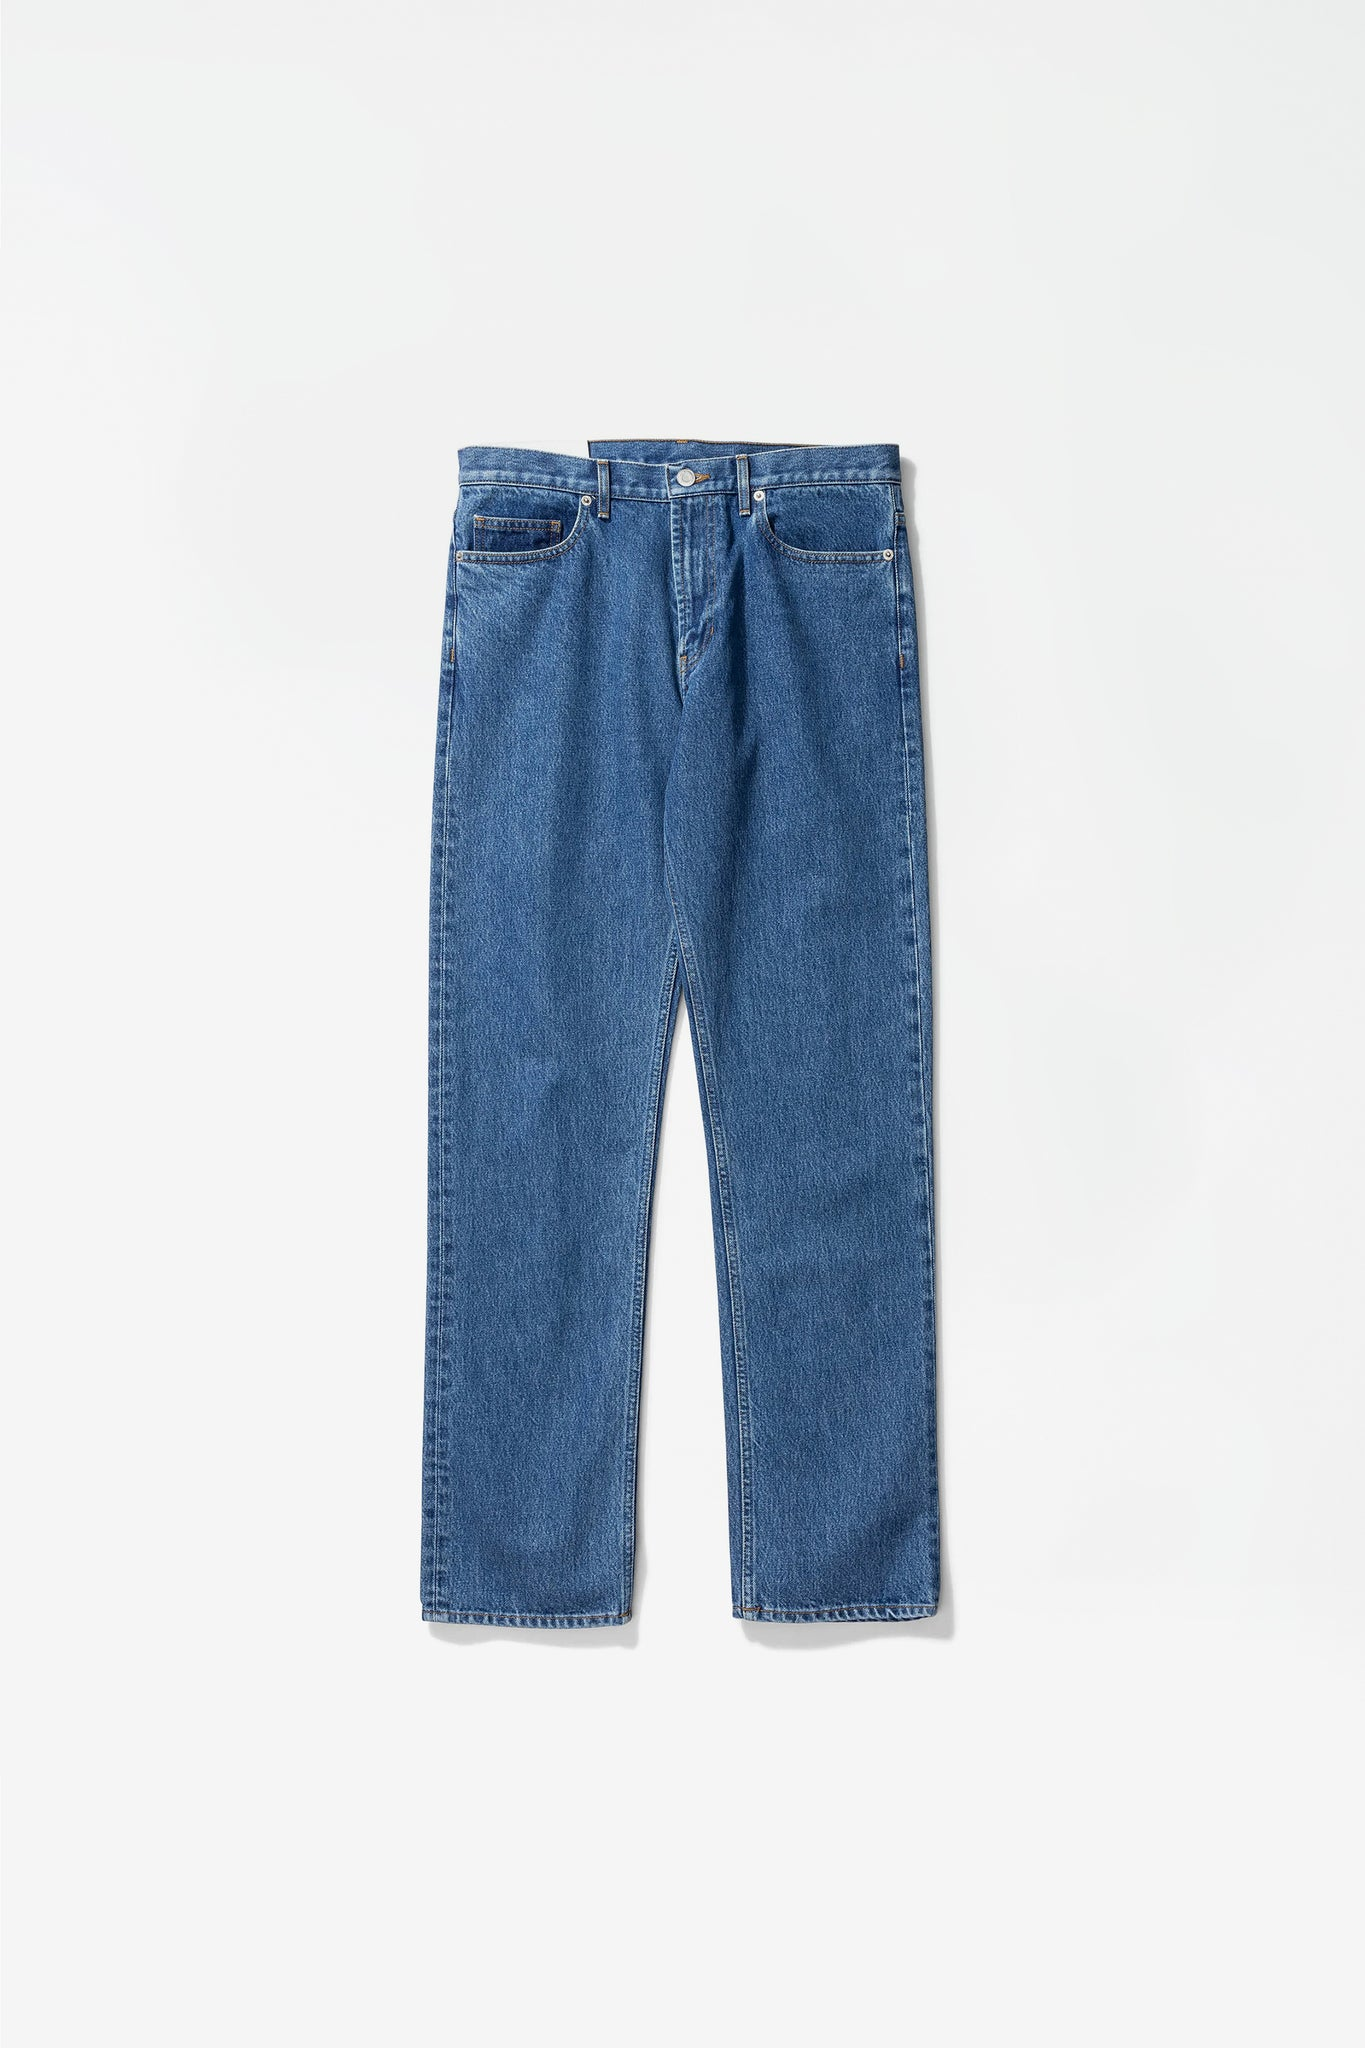 Regular denim jeans vintage indigo